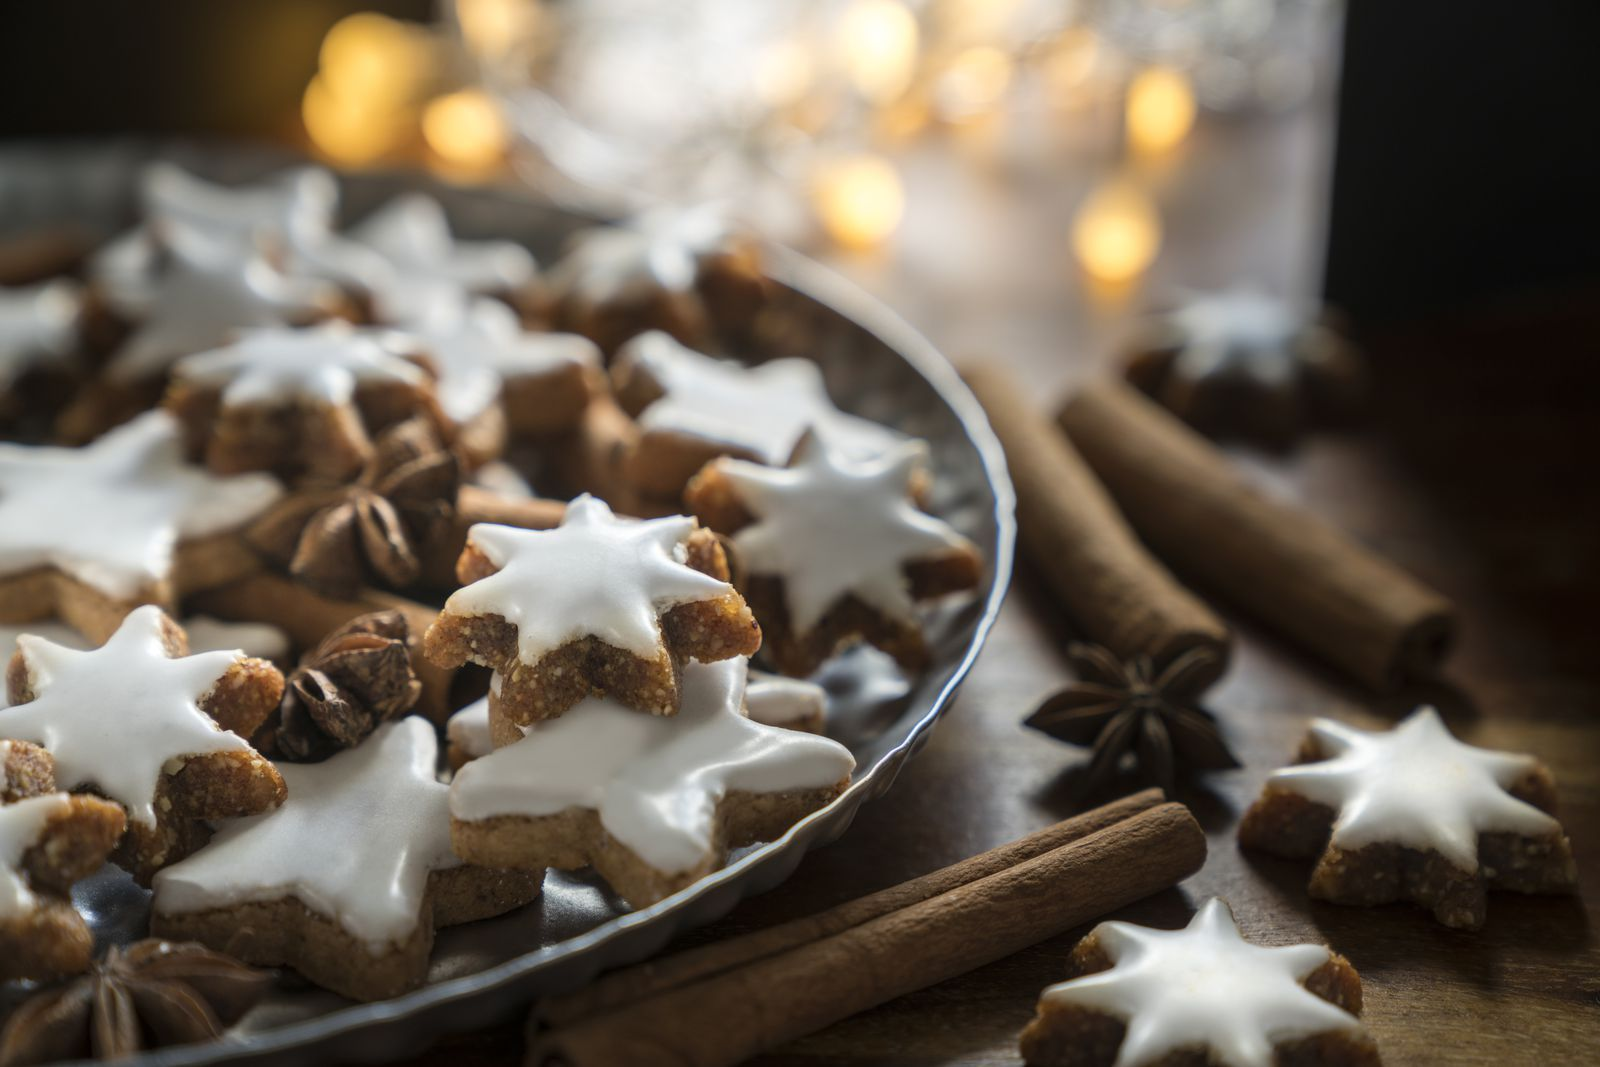 Christmas Desserts Pinterest.Pinterest Reveals Its Top Tried And Tested Christmas Recipes